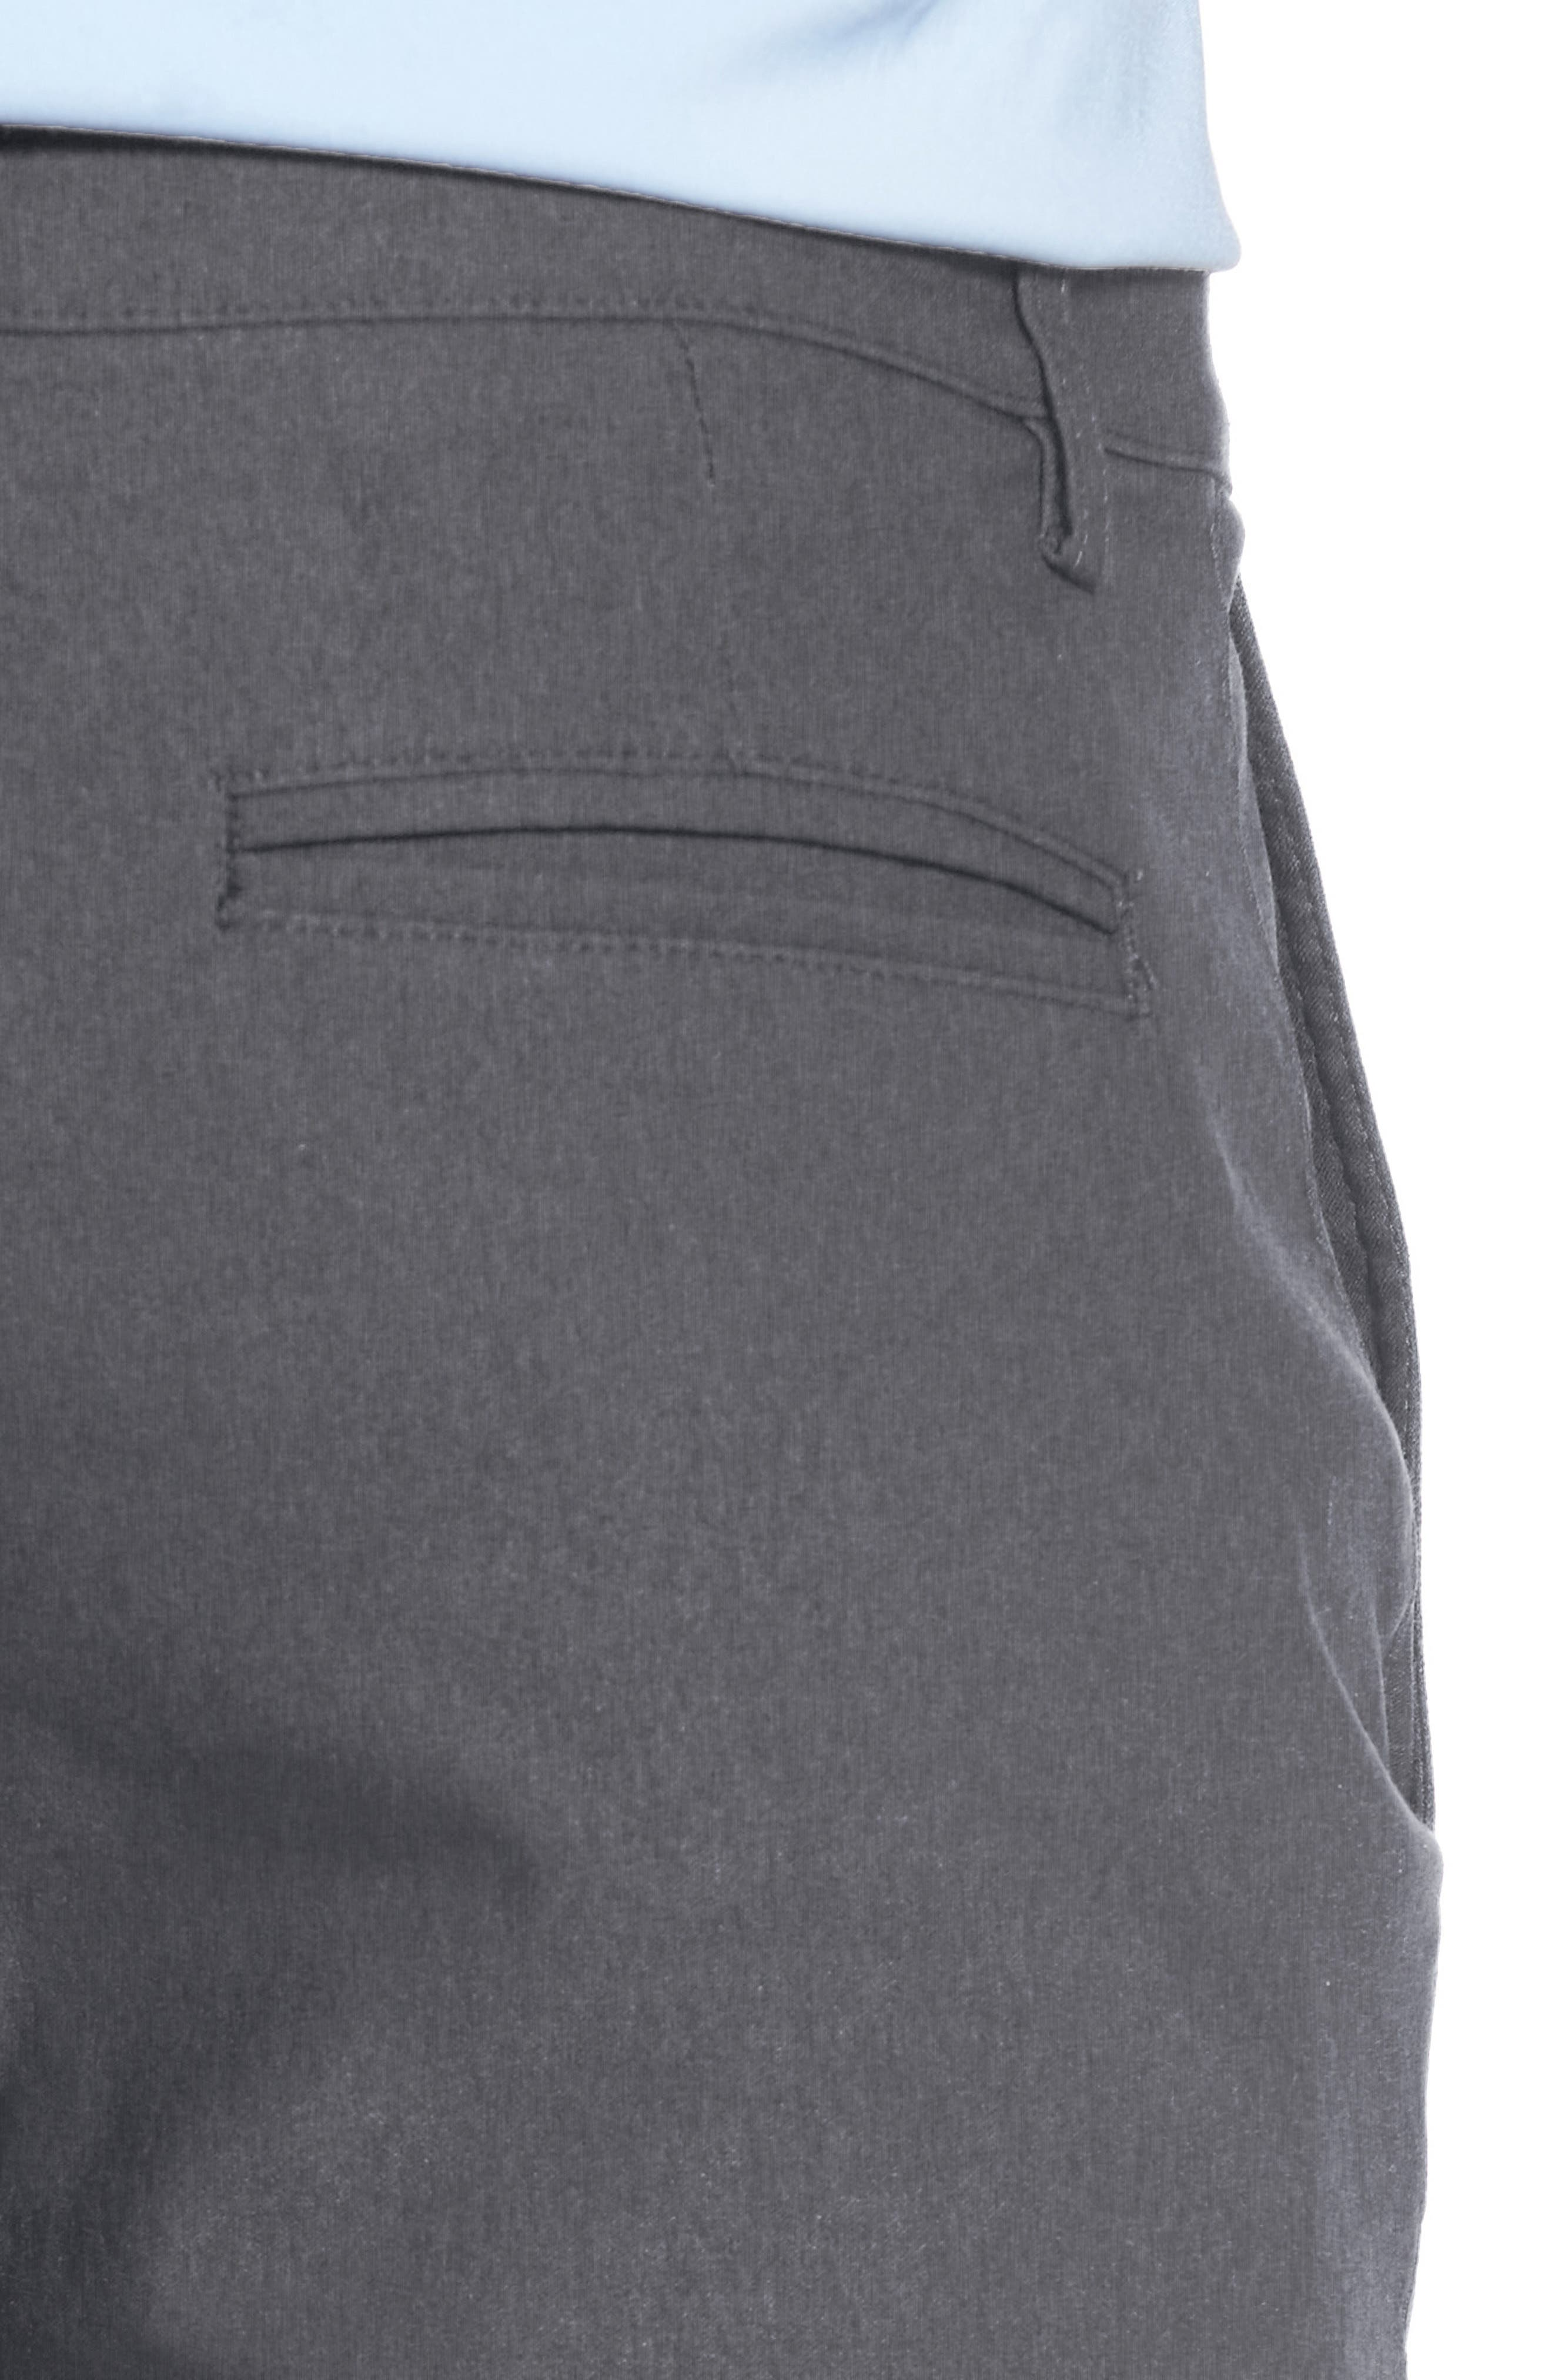 Vice President Trim Fit Performance Chinos,                             Alternate thumbnail 4, color,                             020